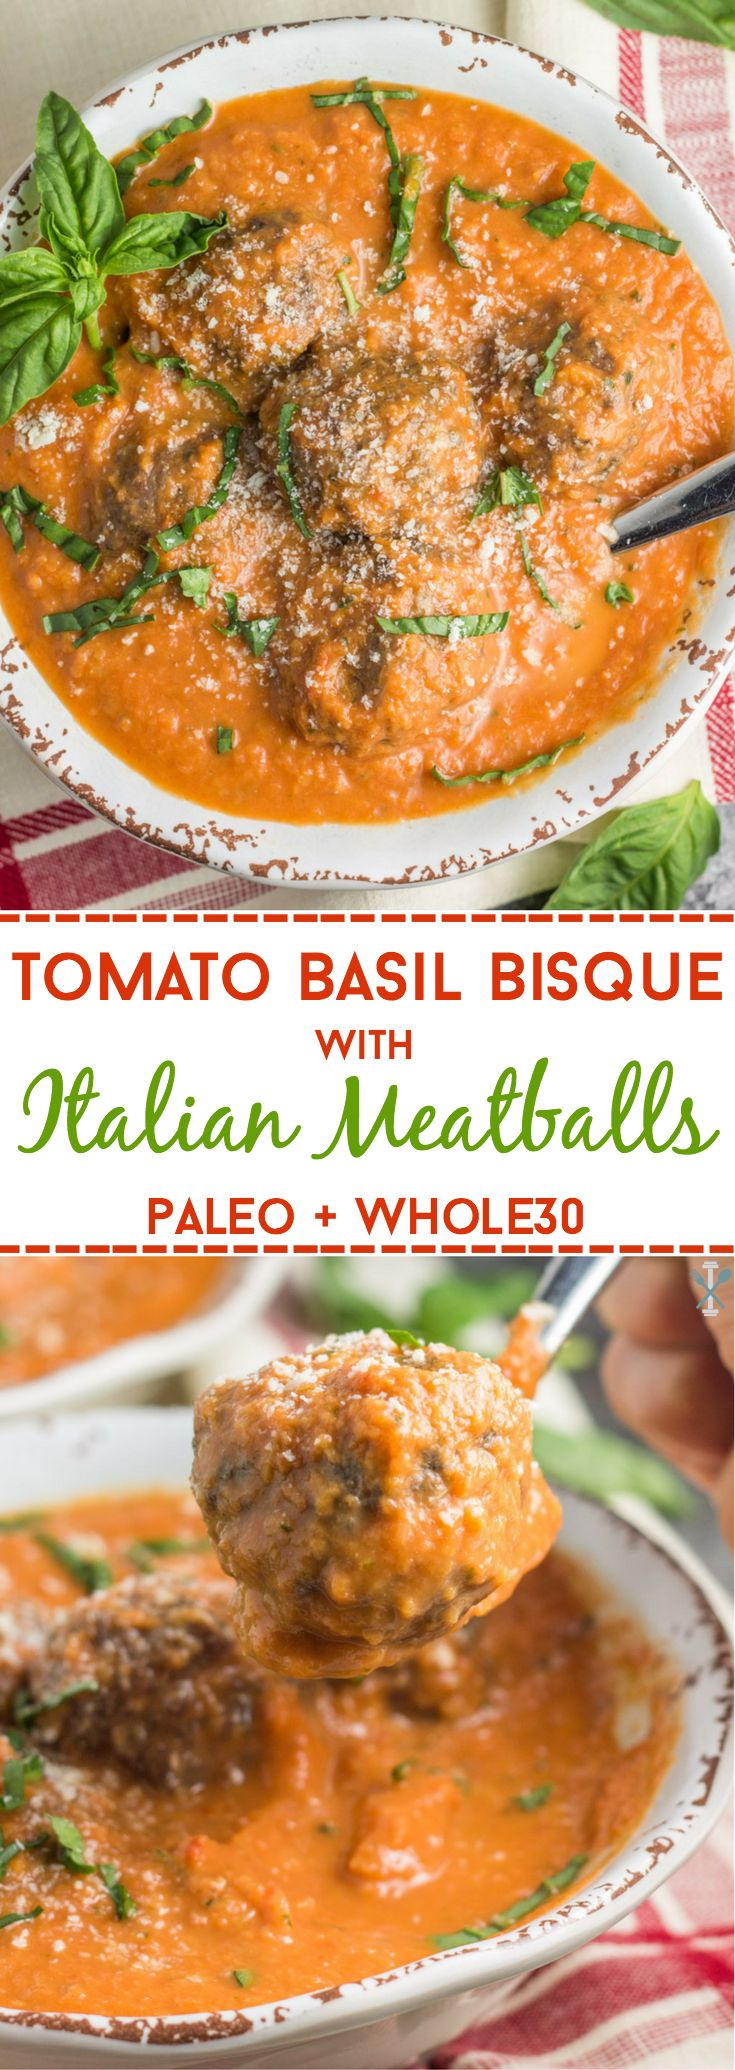 This dairy free and Whole30 compliant tomato basil bisque with Italian meatballs is an easy winter soup with simple ingredients! The perfect paleo dinner the whole family will love. via @physicalkitch